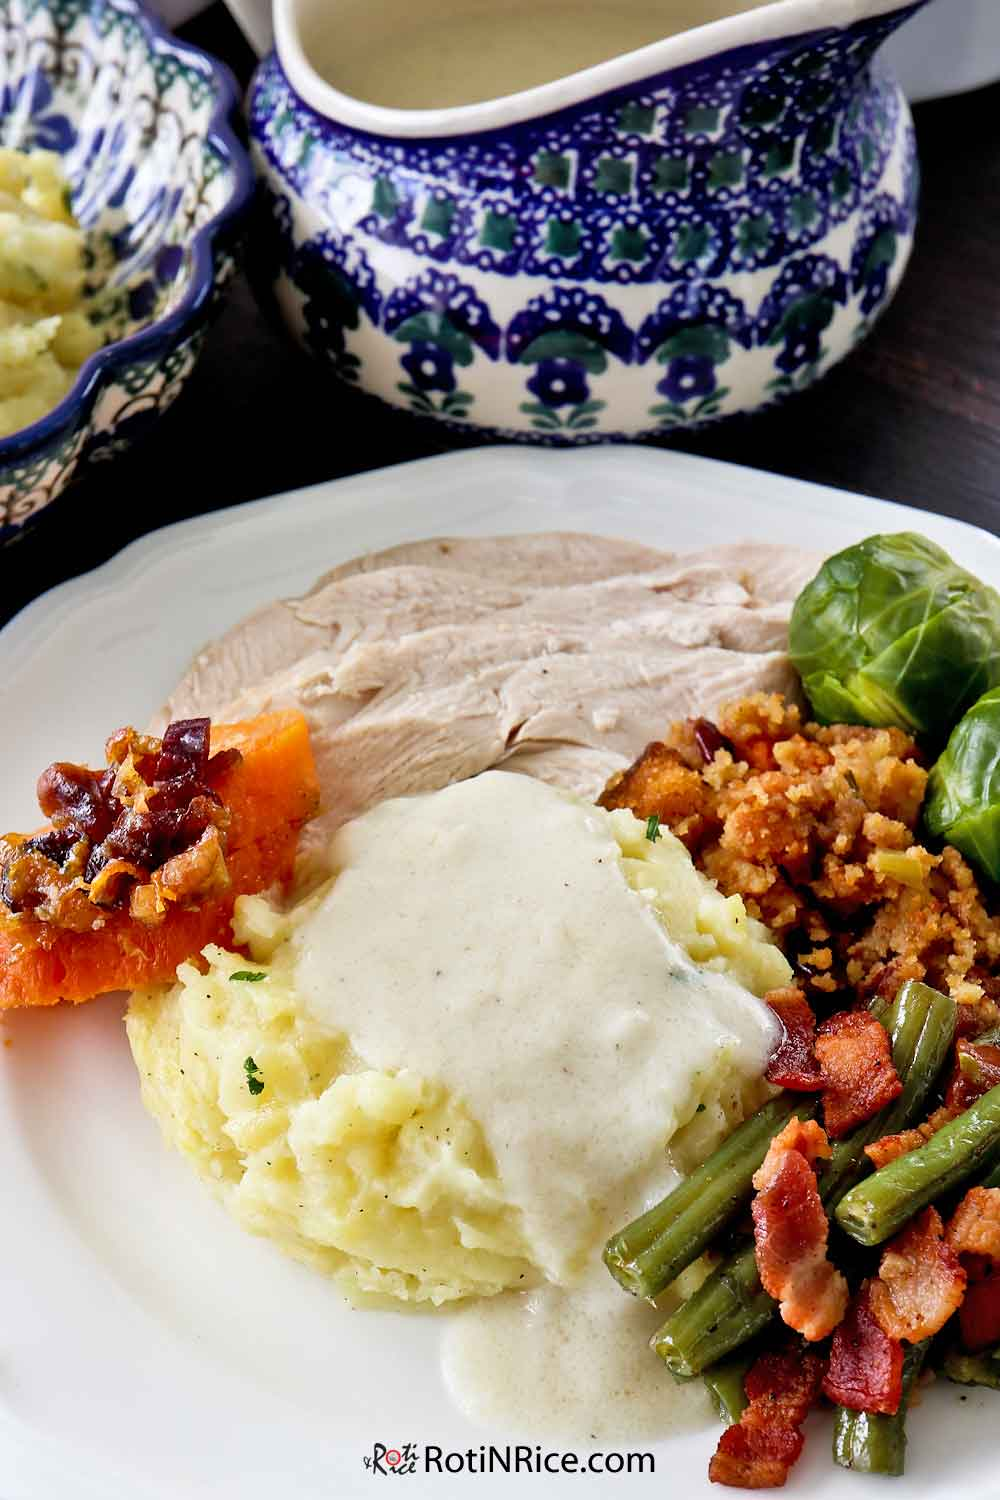 Creamy Turkey Gravy perfect with Creamy Mashed Potatoes